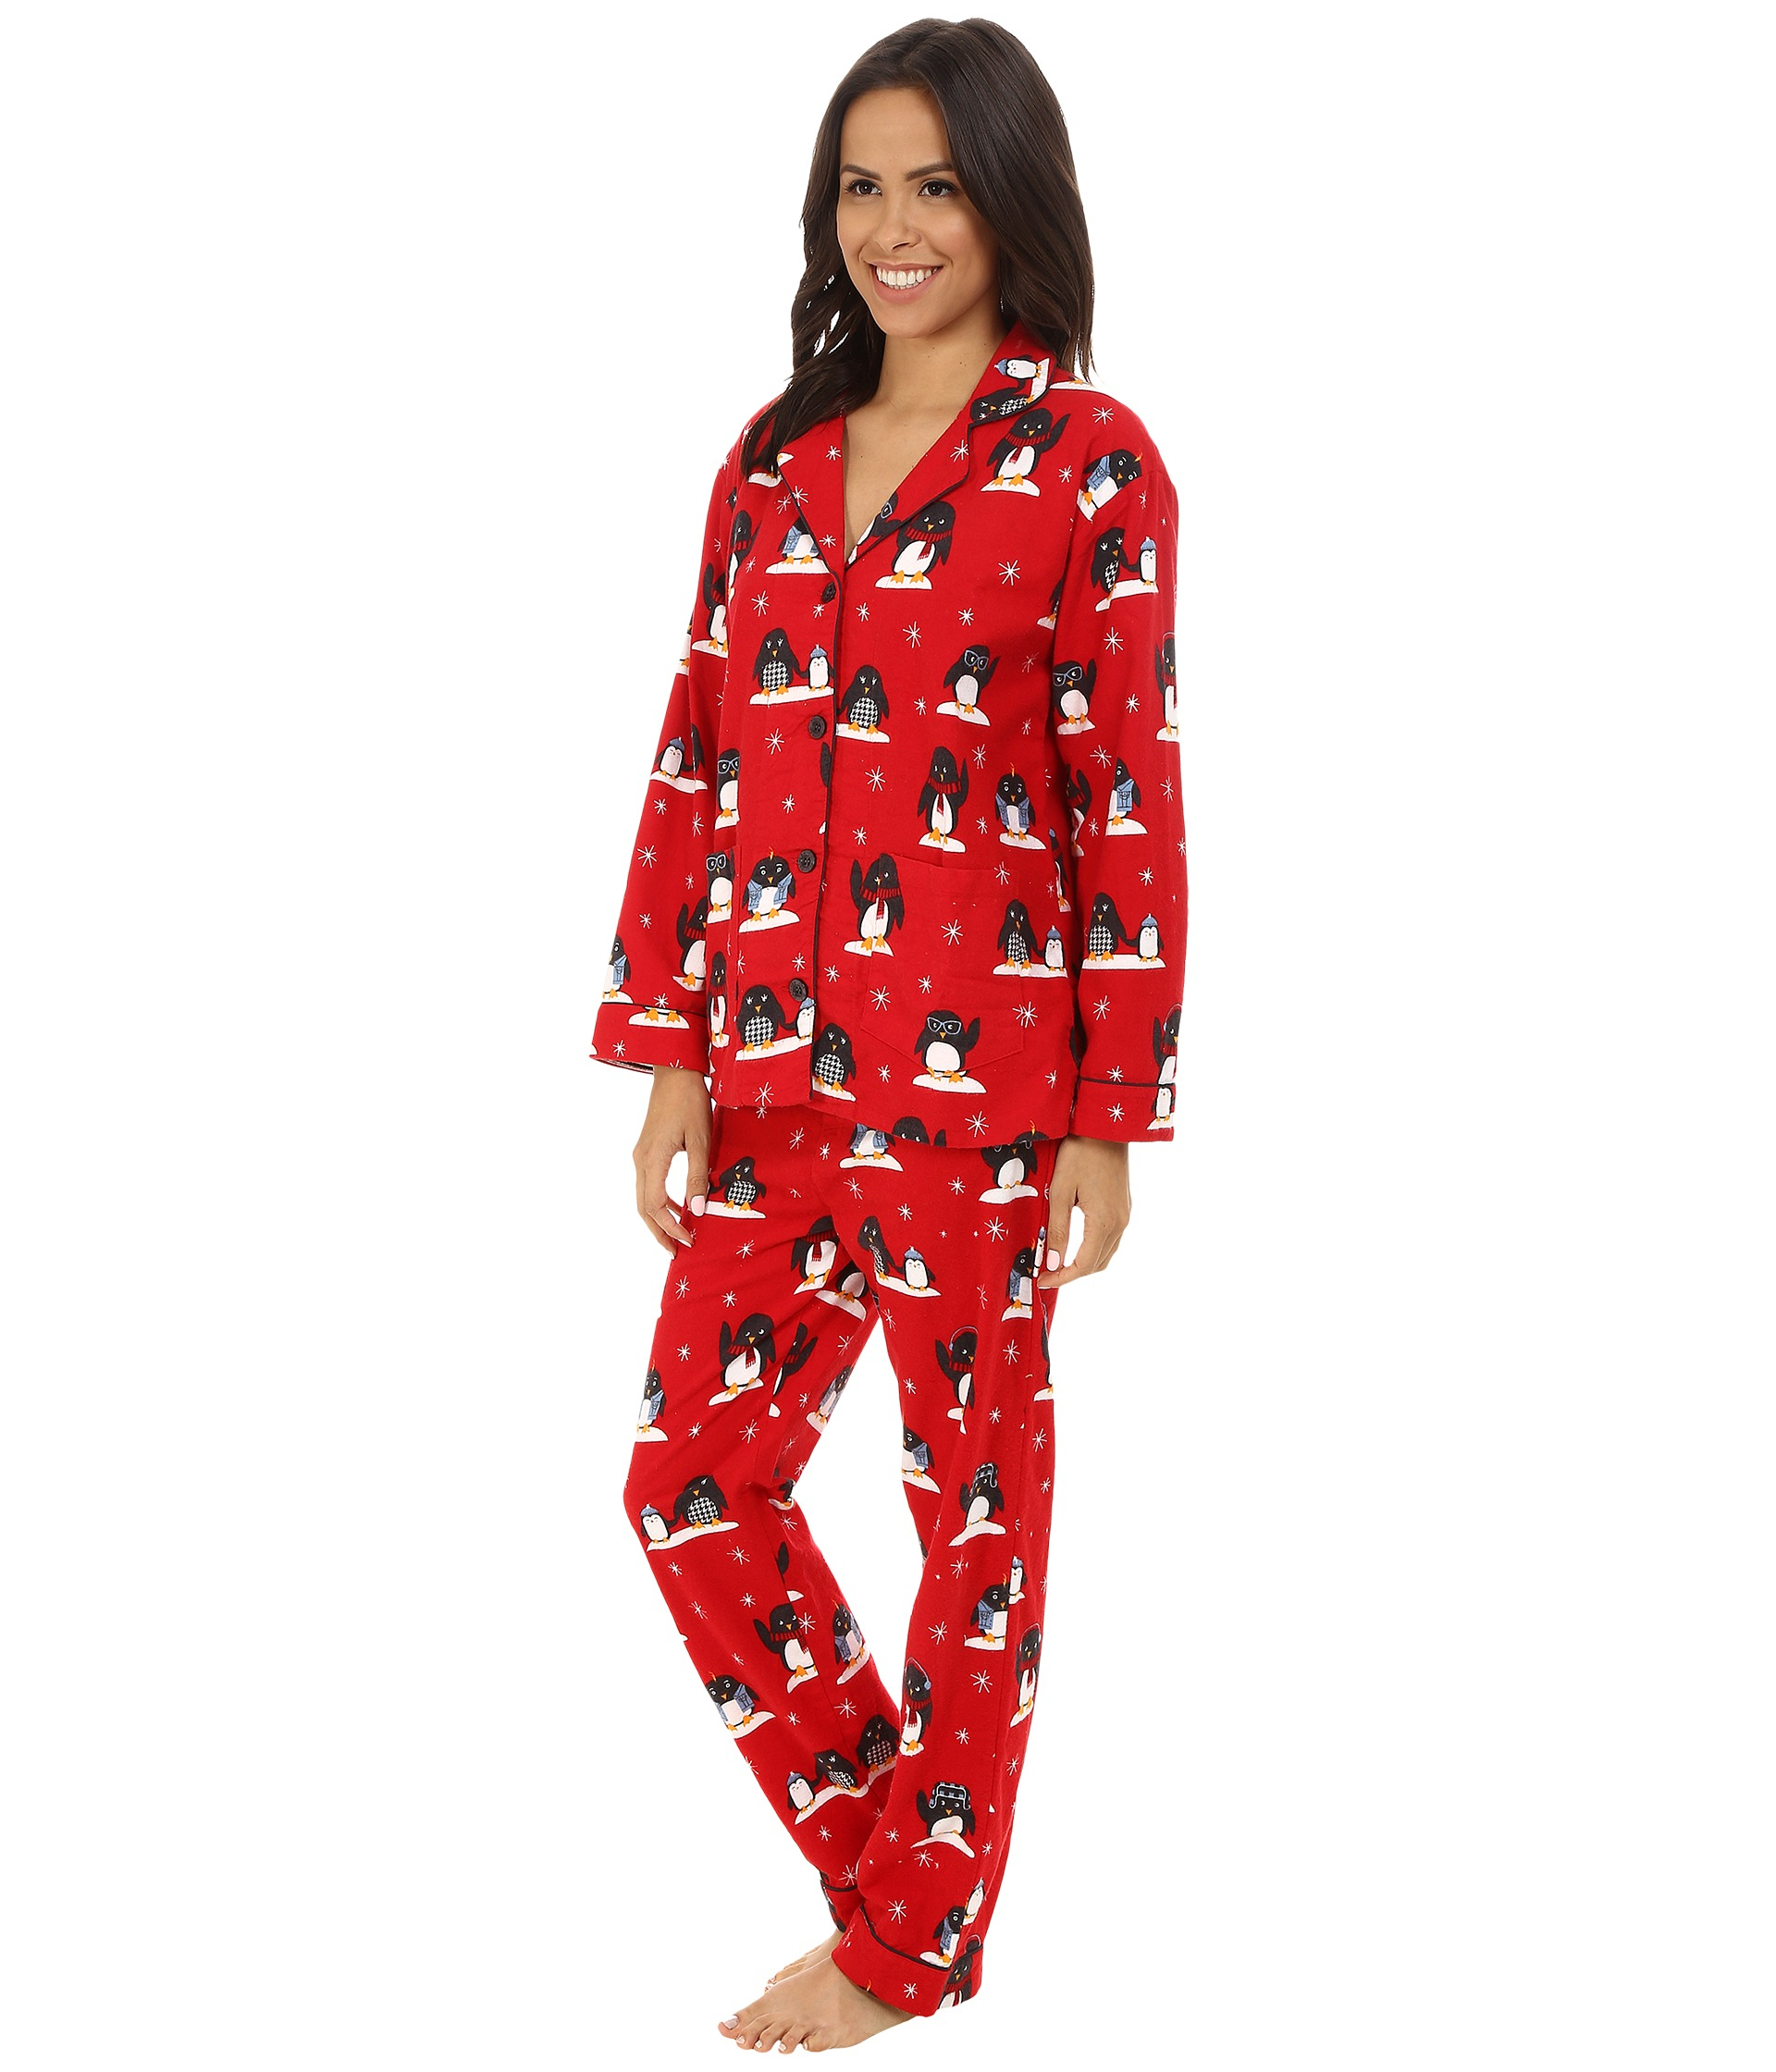 Pj salvage Fall Into Flannel Penguin Print Pajama Set in Red | Lyst